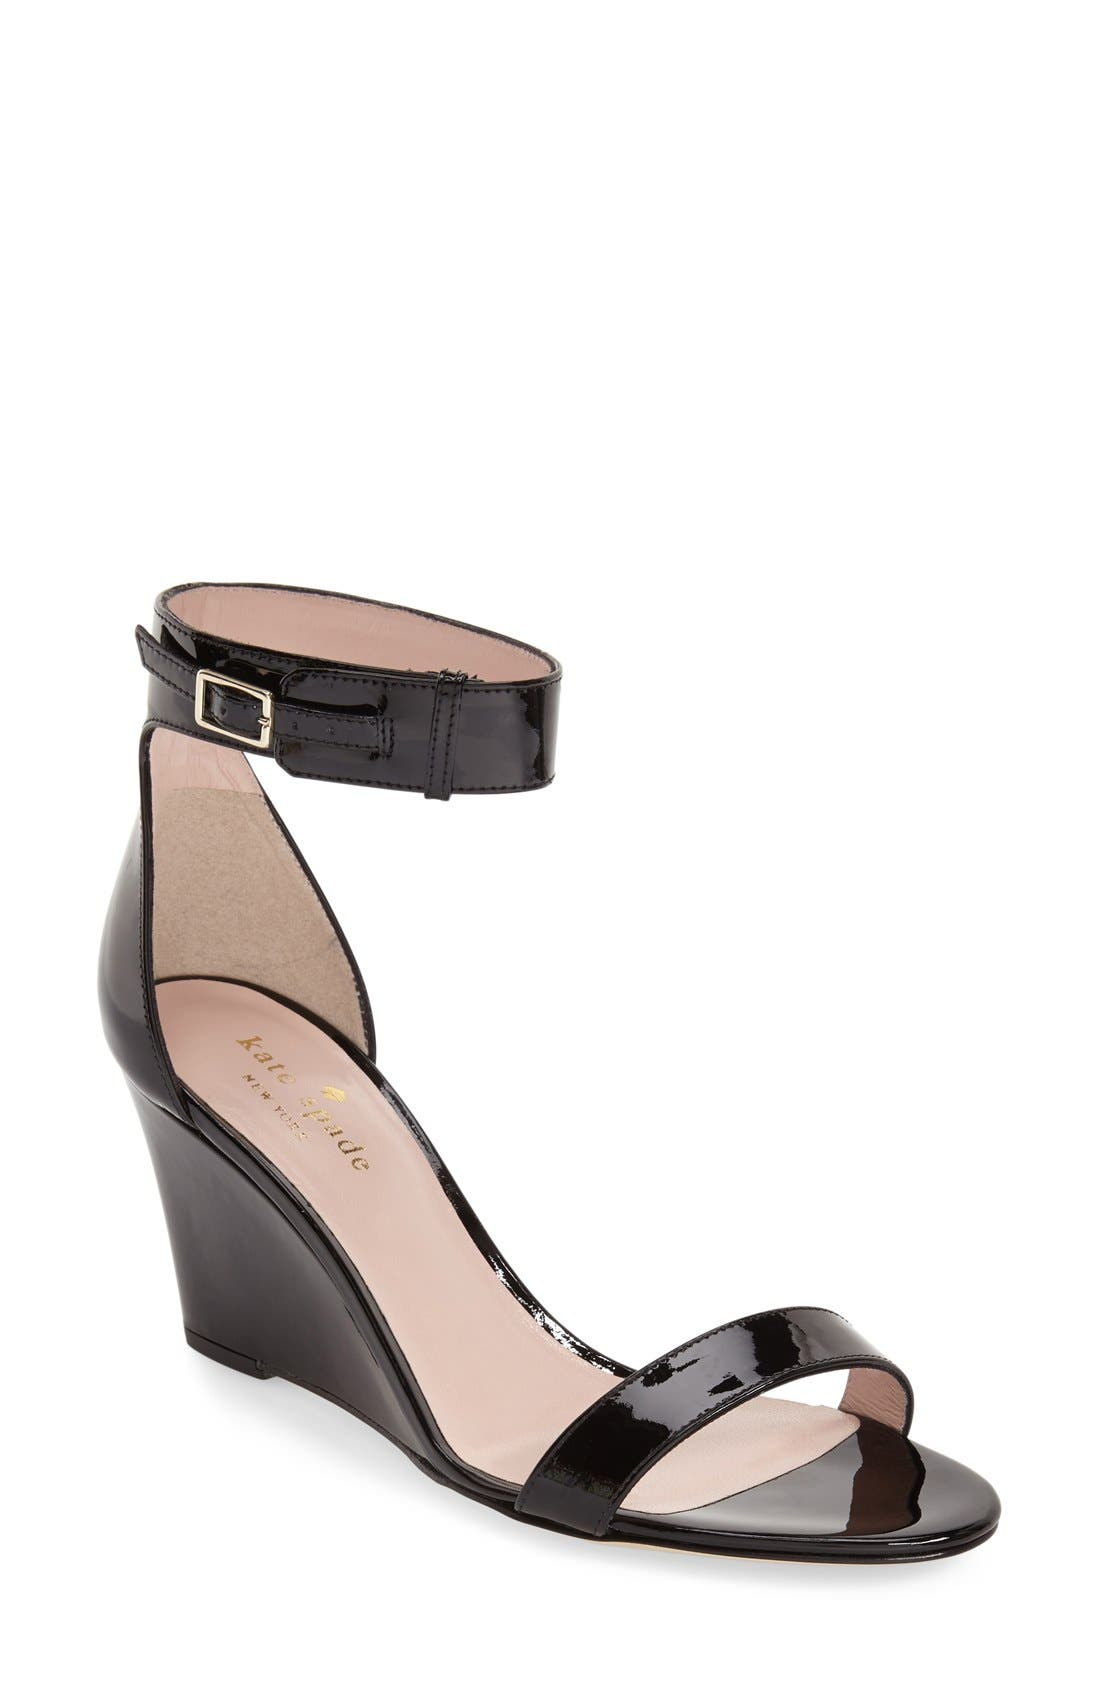 'ronia' wedge sandal,                             Main thumbnail 1, color,                             Black Patent